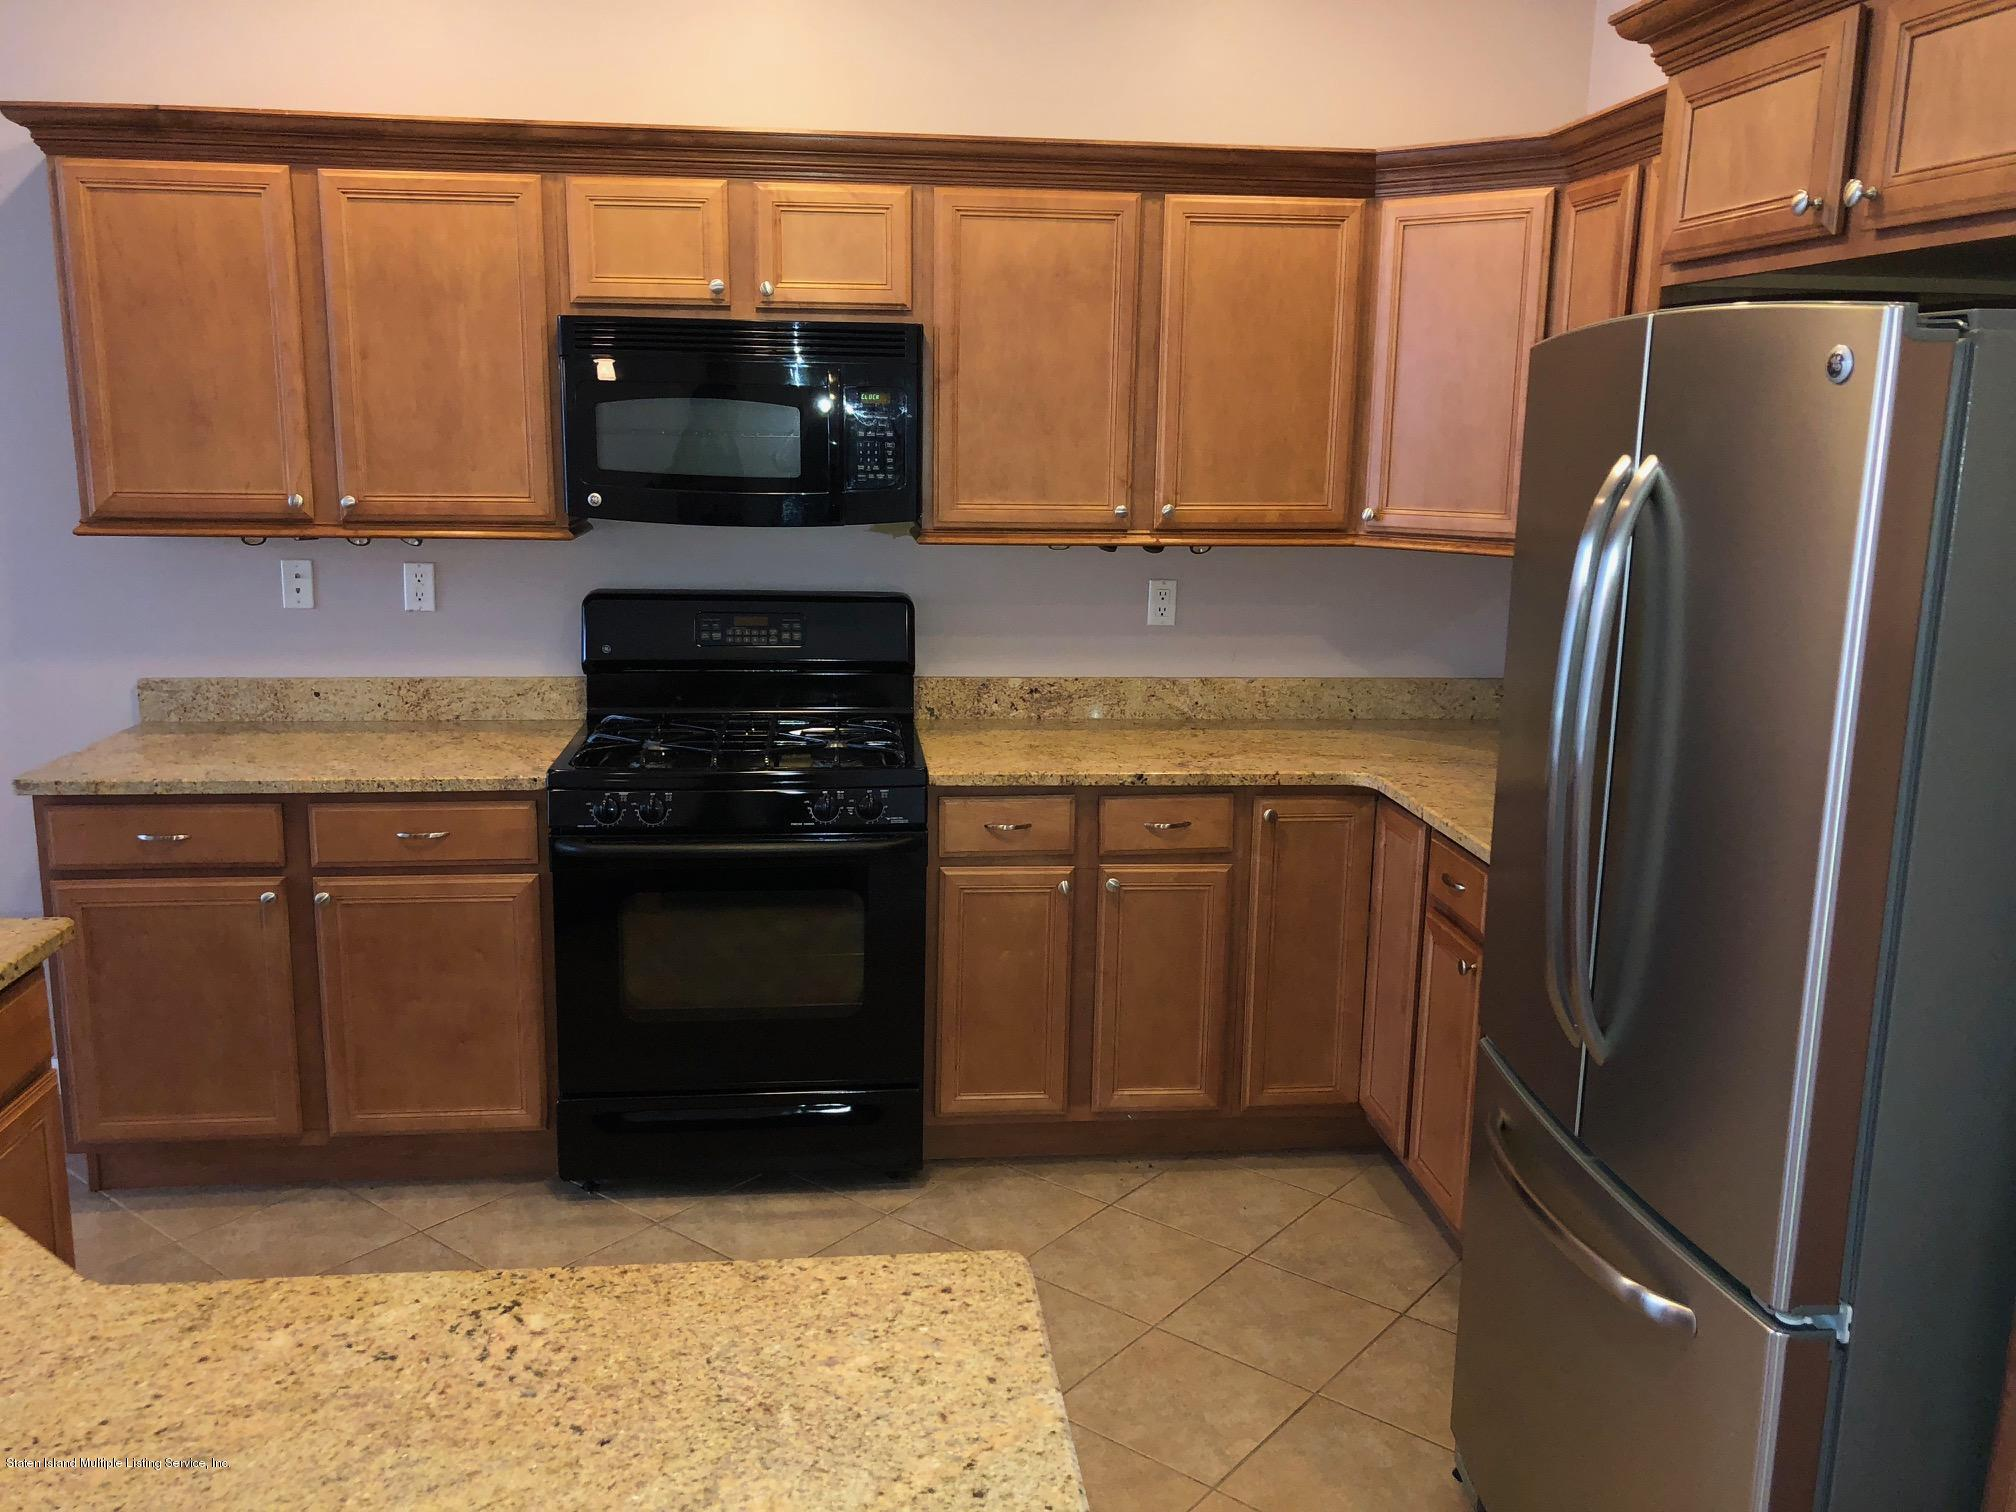 Single Family - Attached 61 Topside Lane  Staten Island, NY 10309, MLS-1129867-11